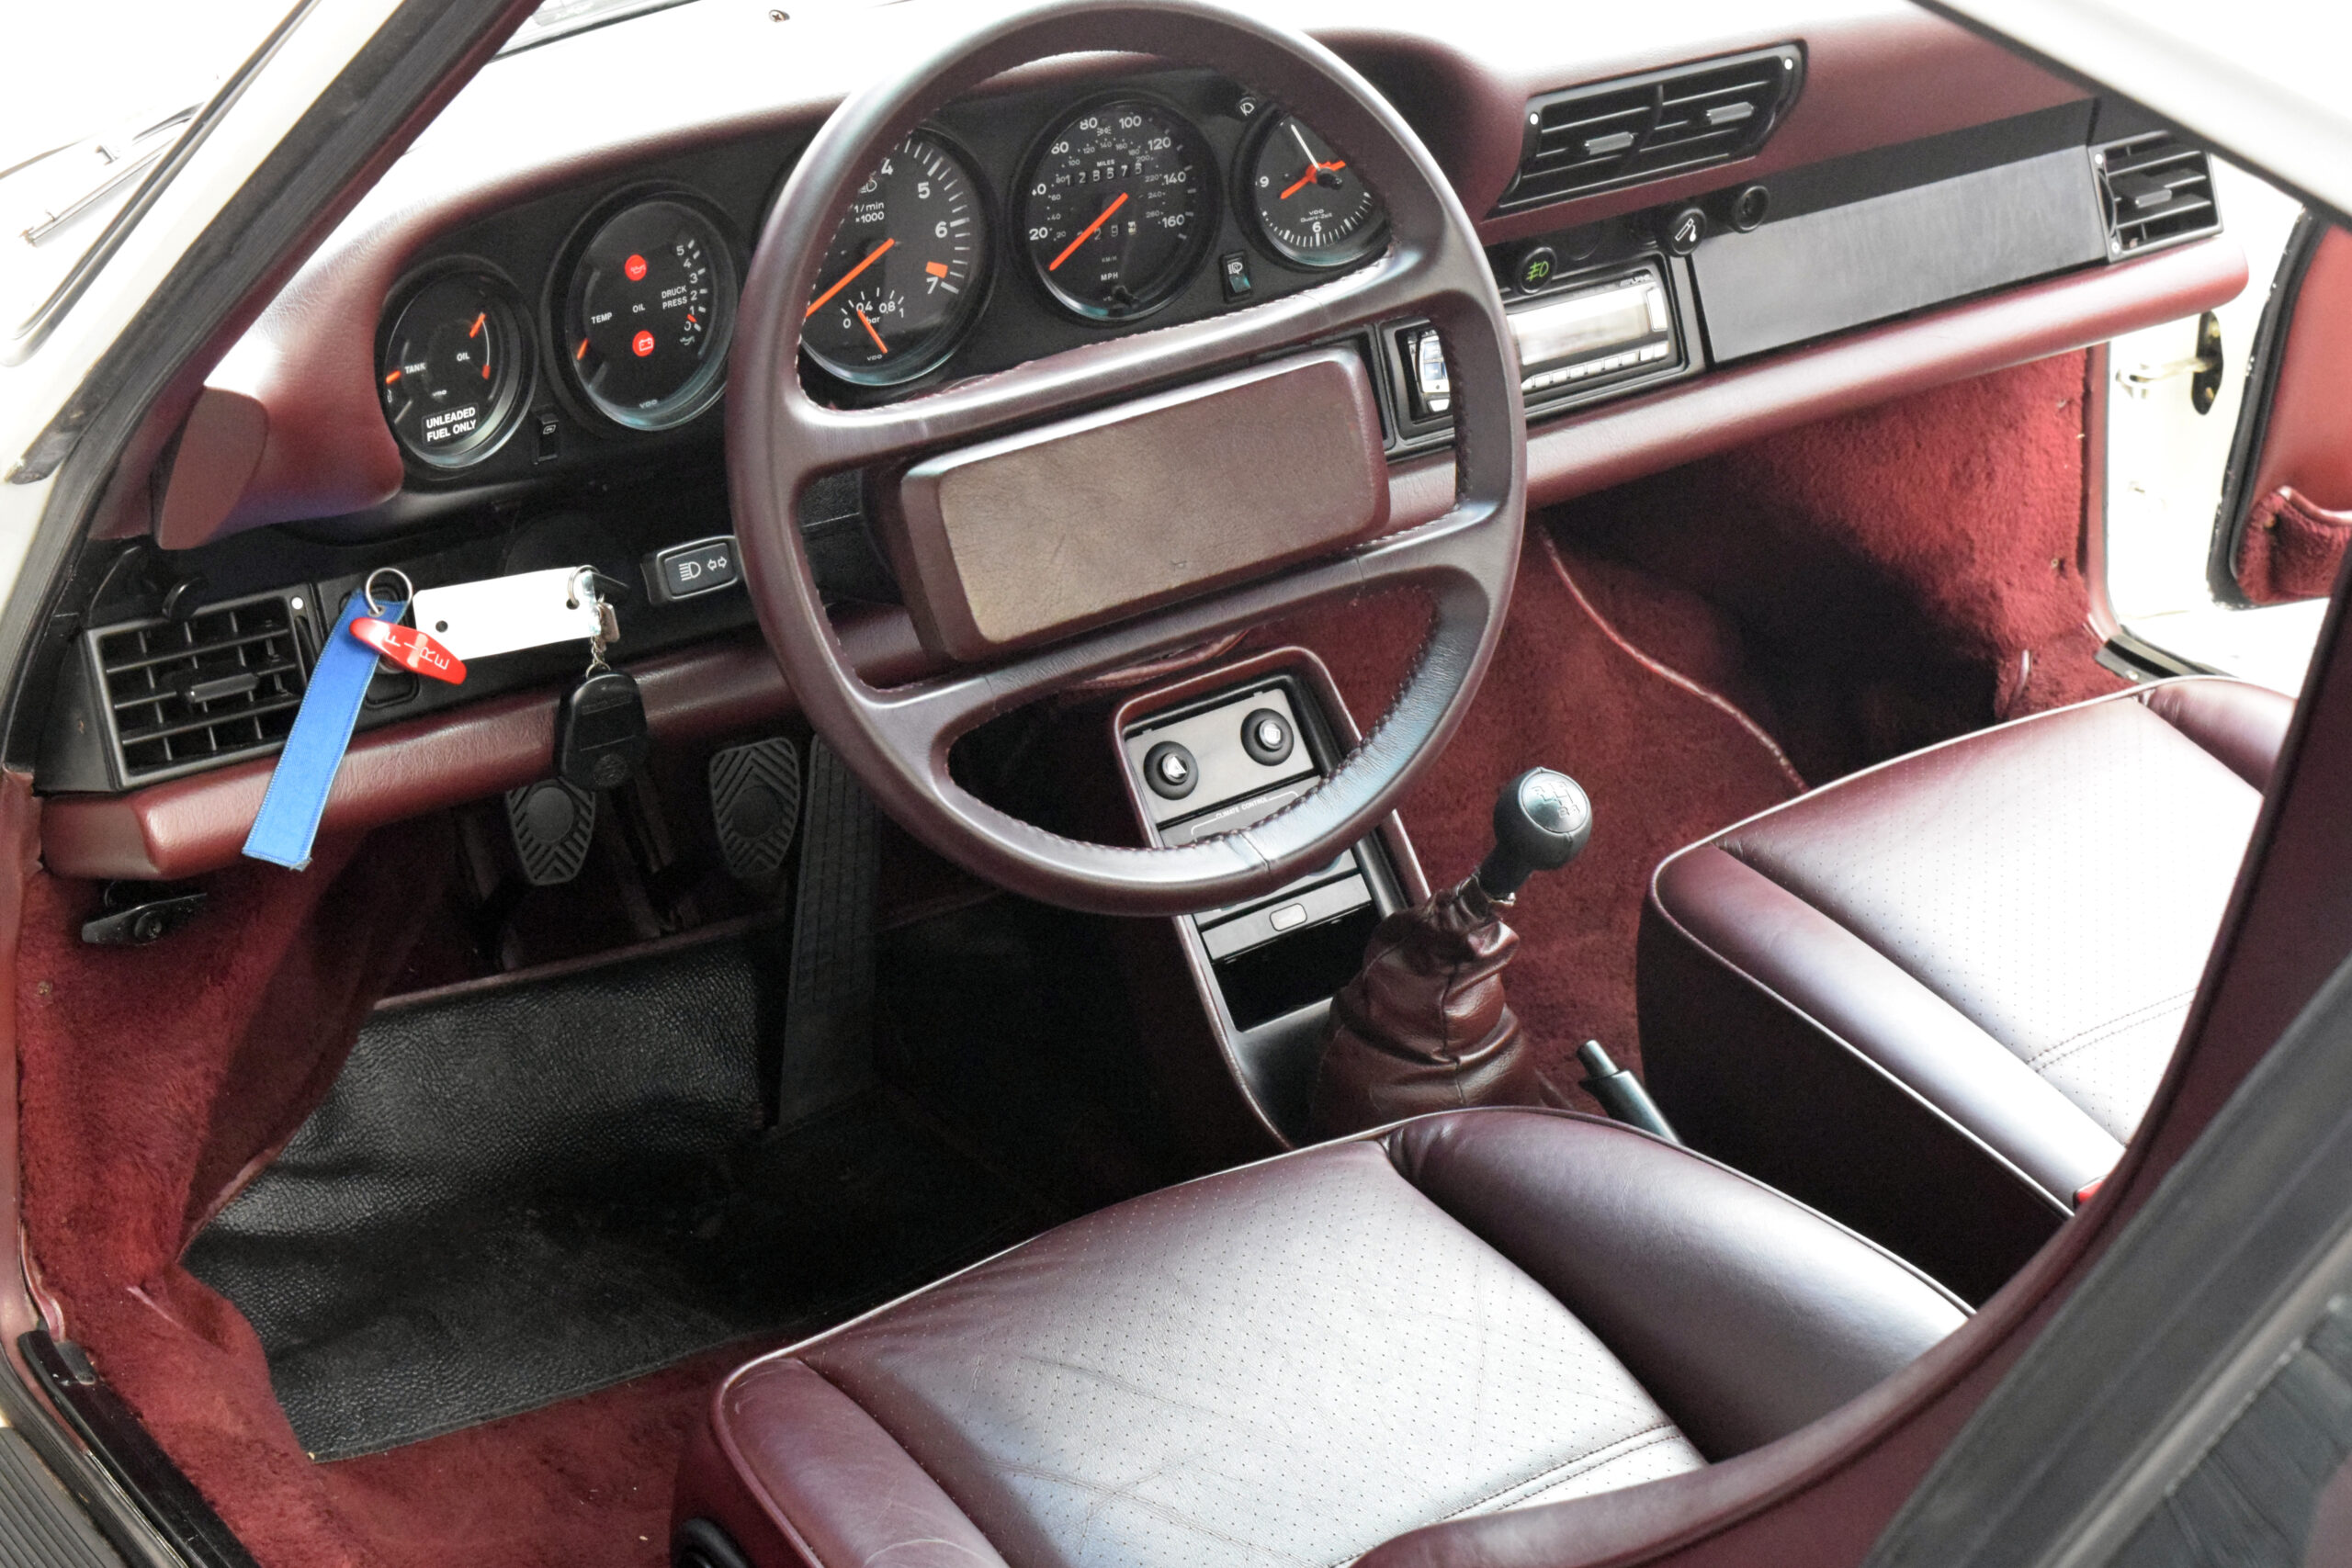 1988 911 (930) Turbo, California car, Blueprinted engine, one owner until 2016, very fast!